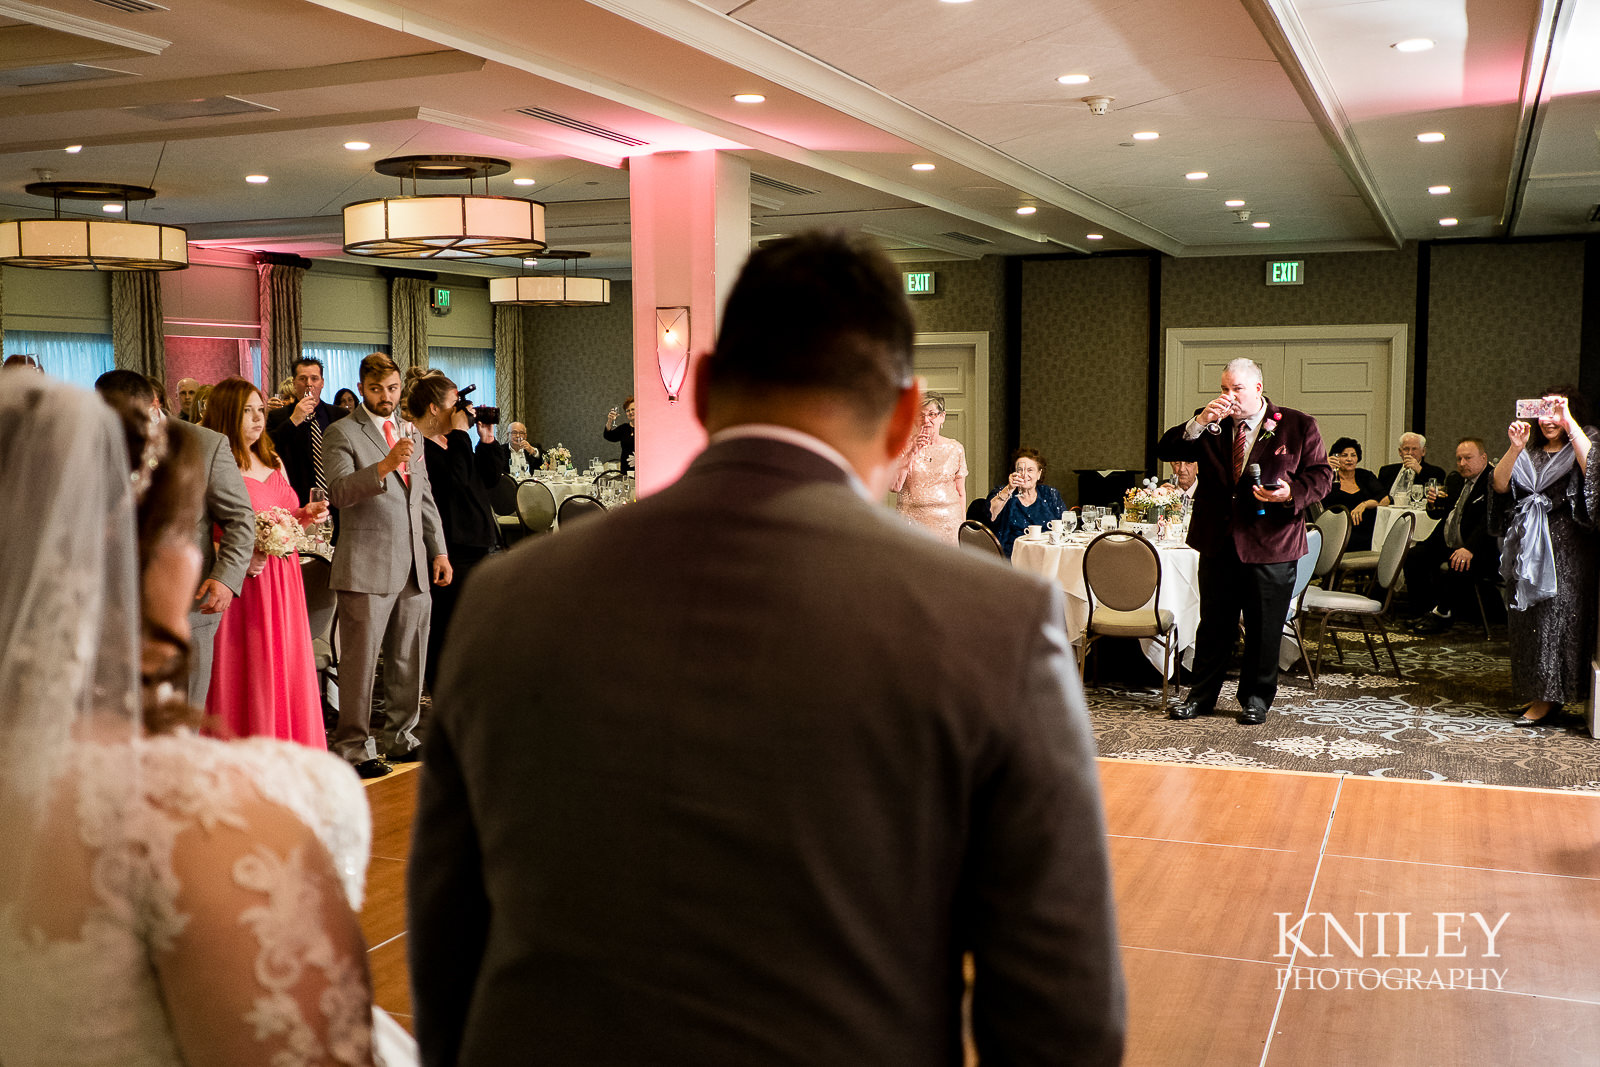 082 - Woodcliff Hotel - Rochester NY wedding photo - Kniley Photography.jpg